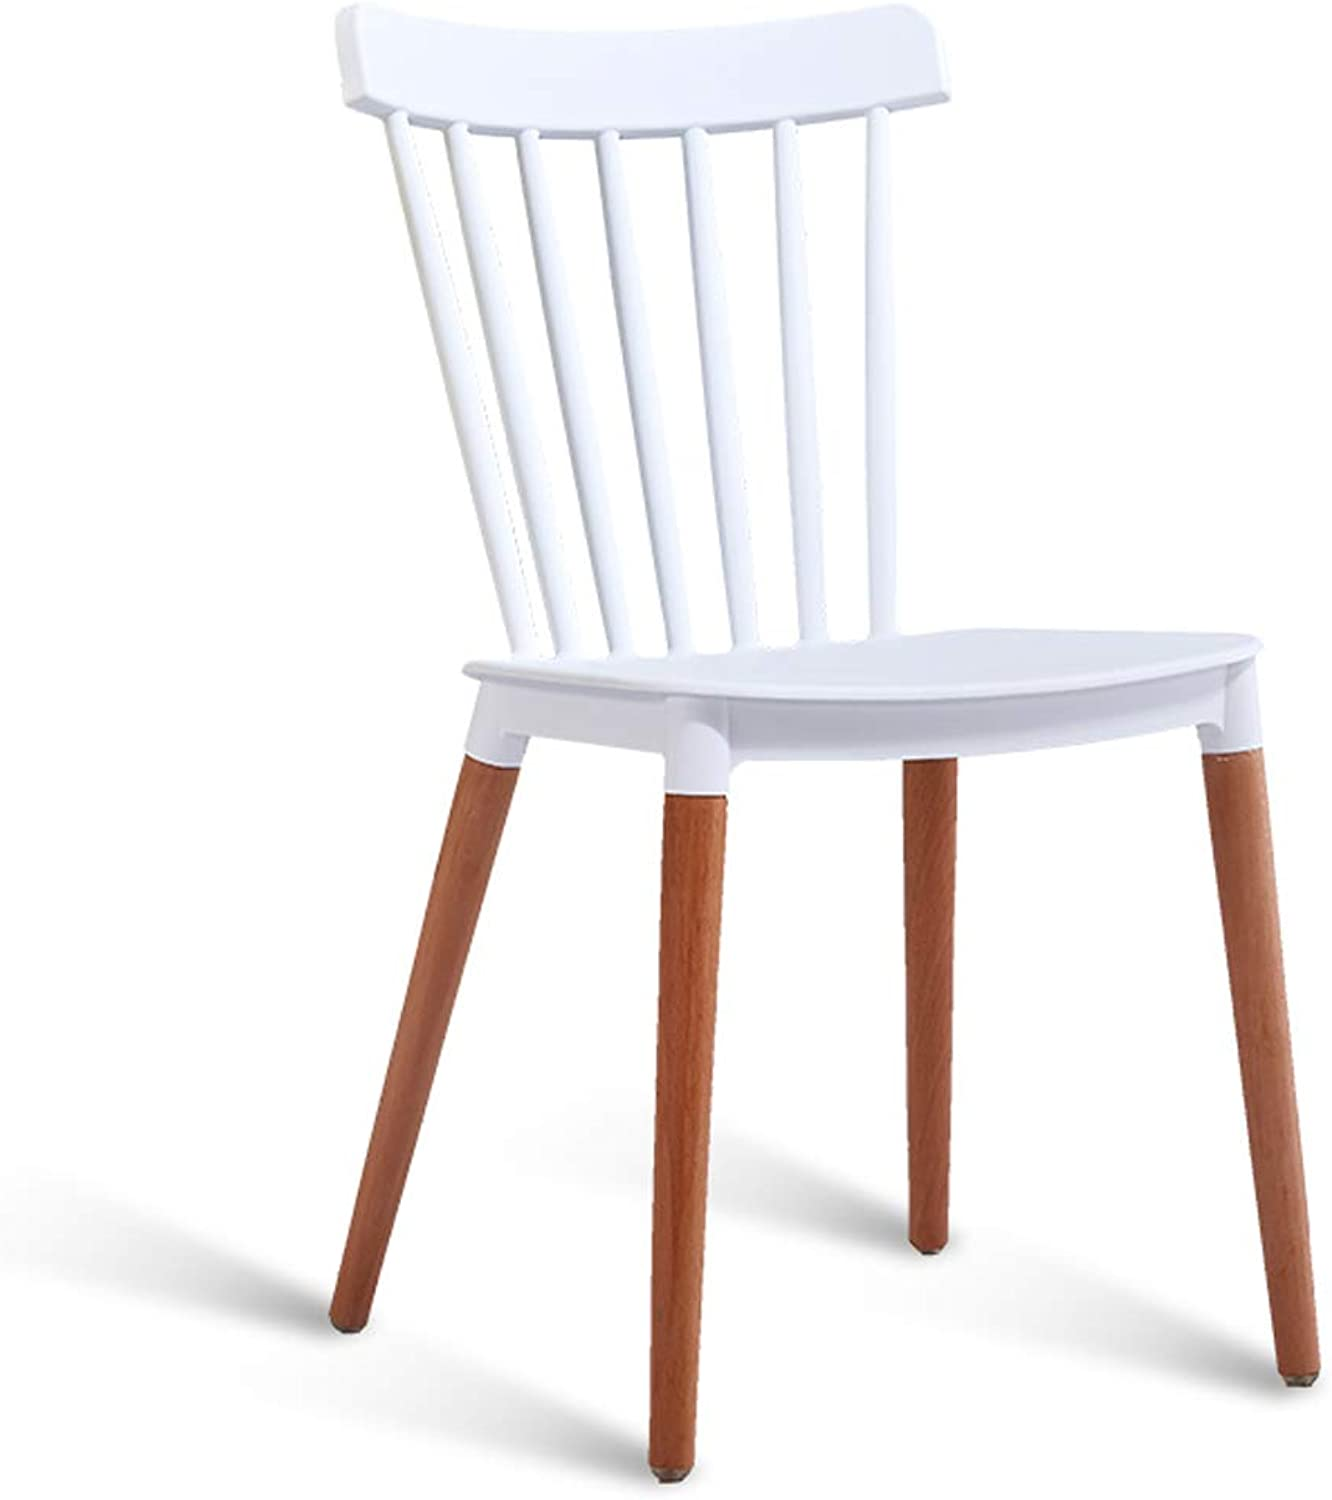 LRW Nordic Minimalist Dining Chair, Home Creative Leisure Backrest Chair, Dining Room Stool Chair, White